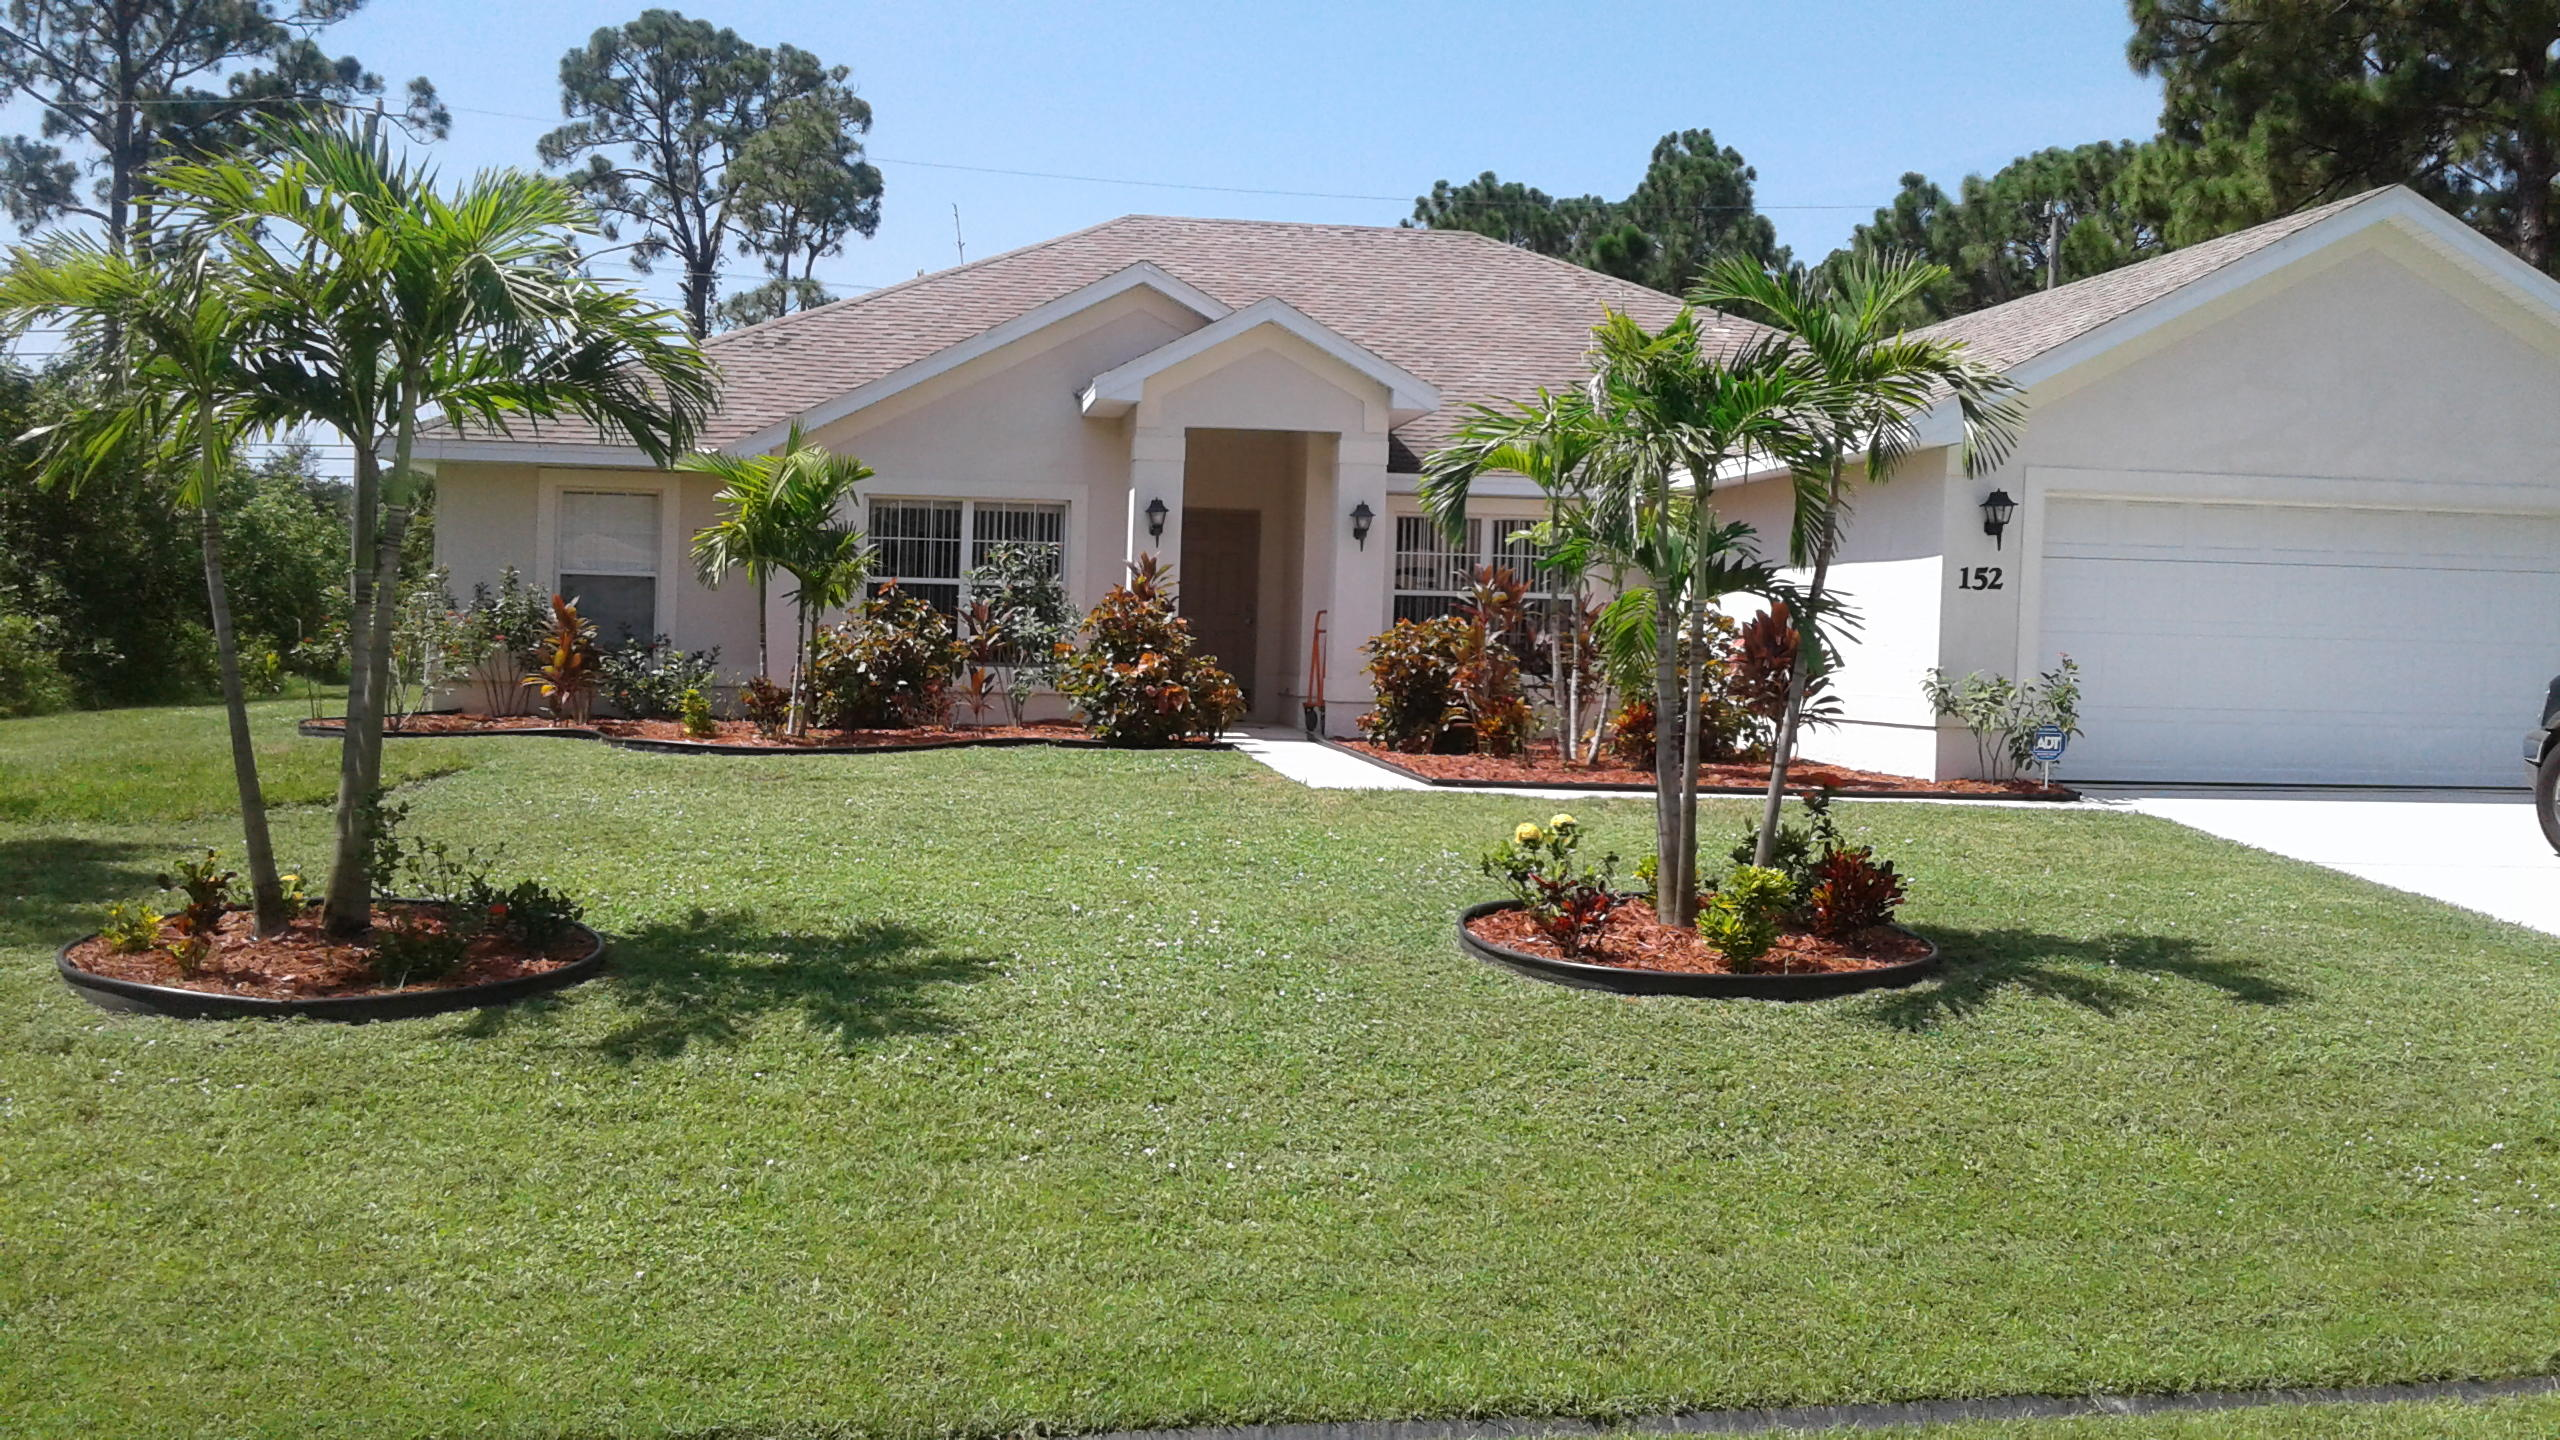 152 SW Pilsner Cir, Port Saint Lucie, Florida